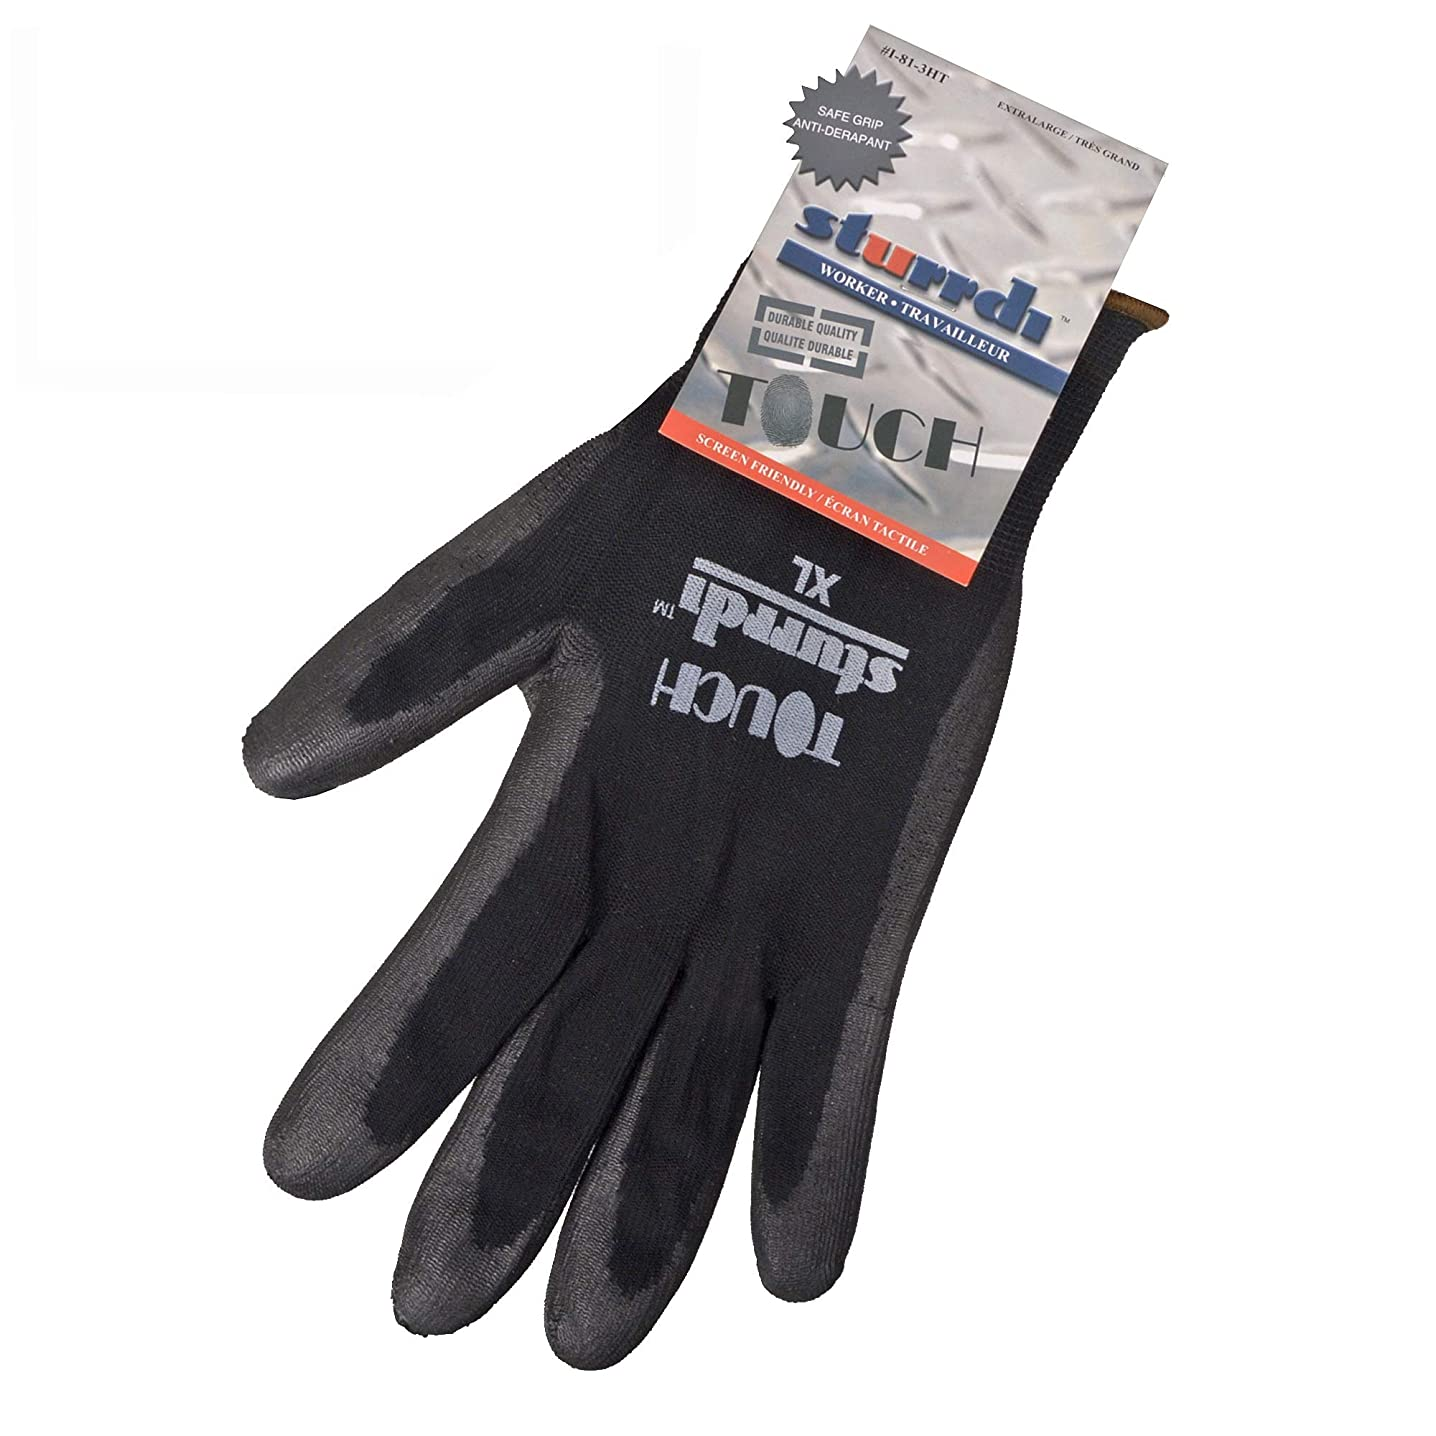 BuylessFashion Polyurethane Black Glove for Work with Nylon Palm-Coated